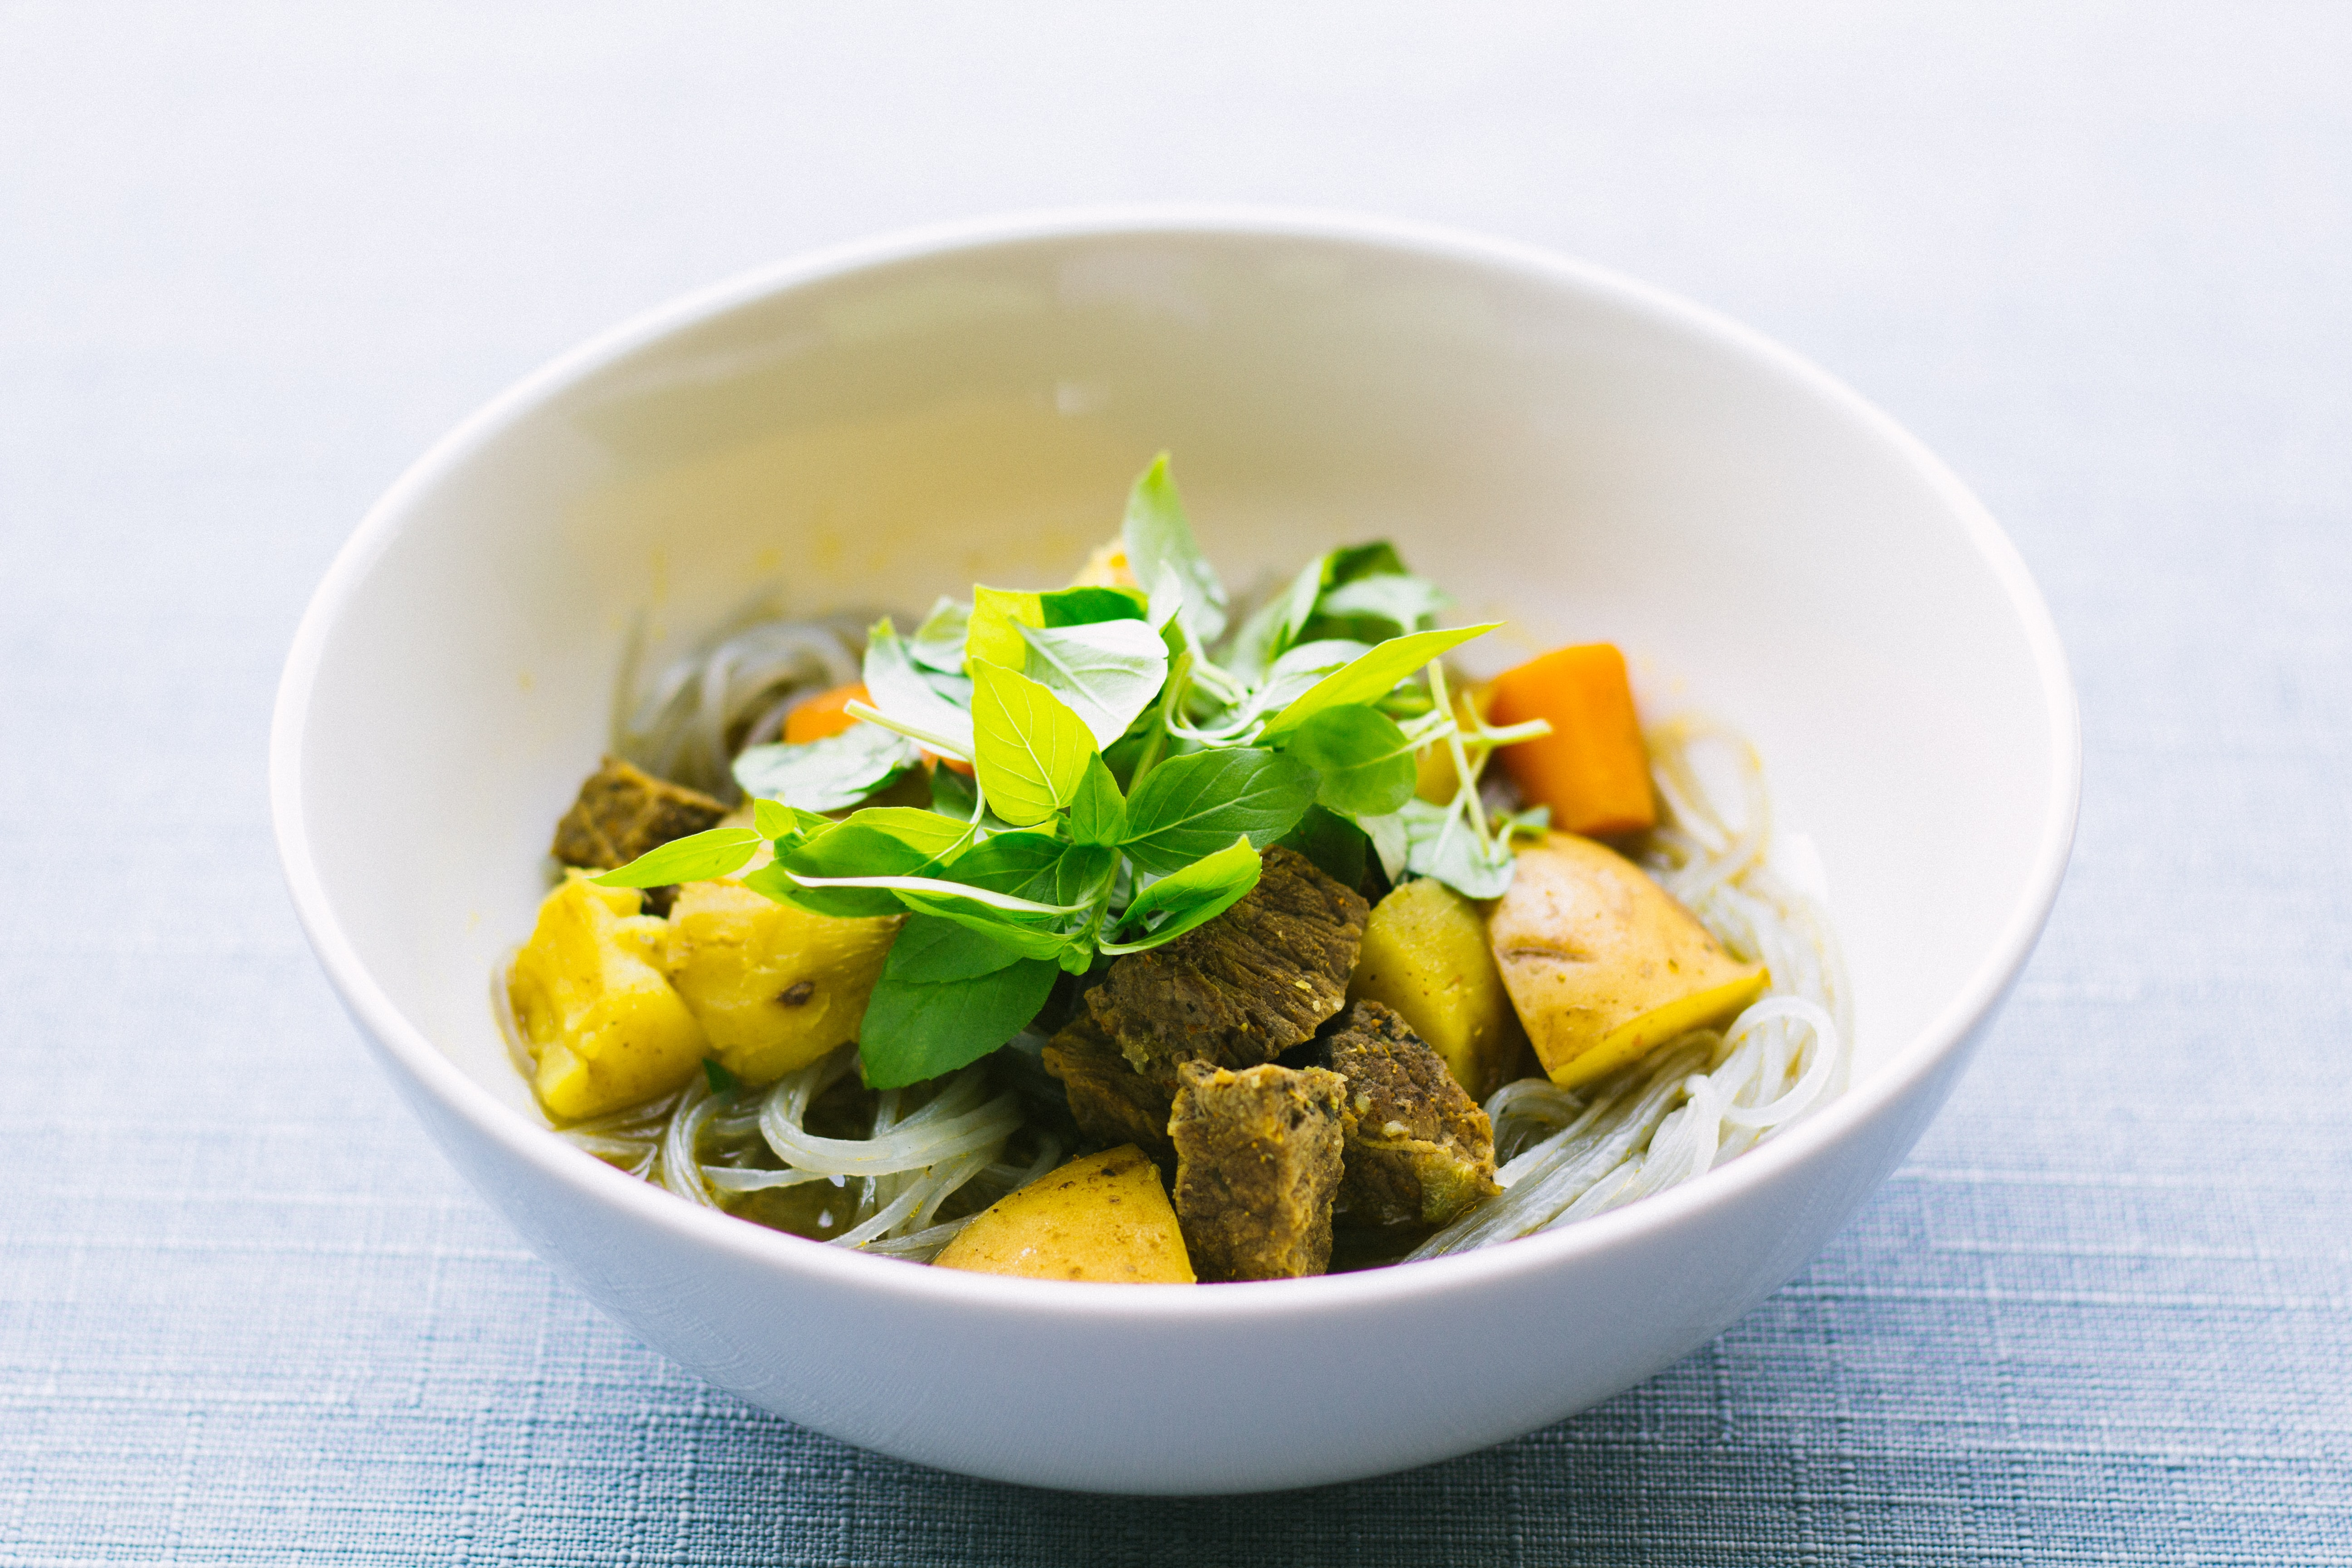 round white ceramic bowl with sliced meat and vegetable on gray surface